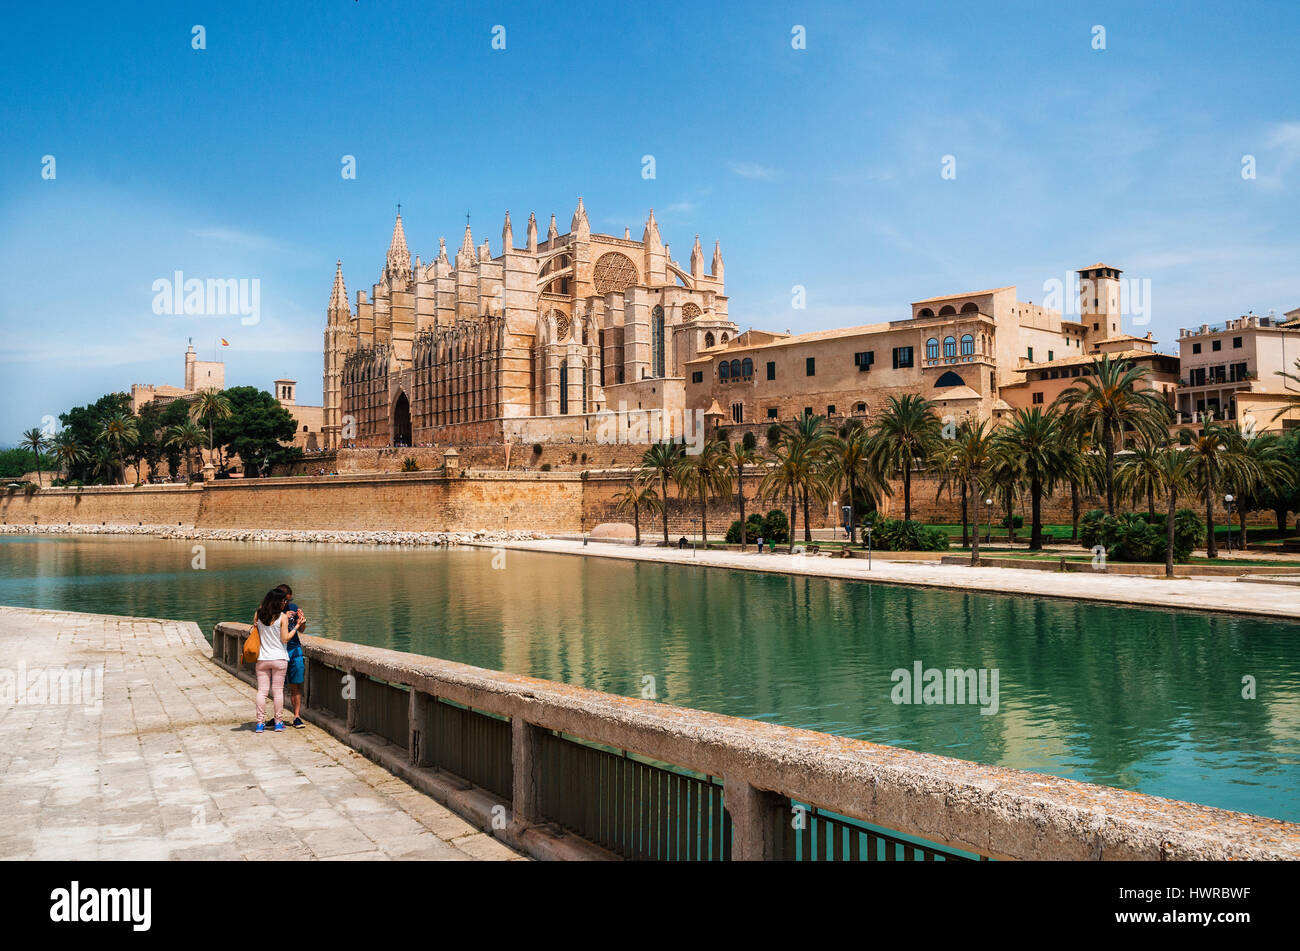 Palma de Mallorca, Spain - May 27, 2016: Park de la Mar against La Seu, the gothic medieval cathedral of Palma de - Stock Image